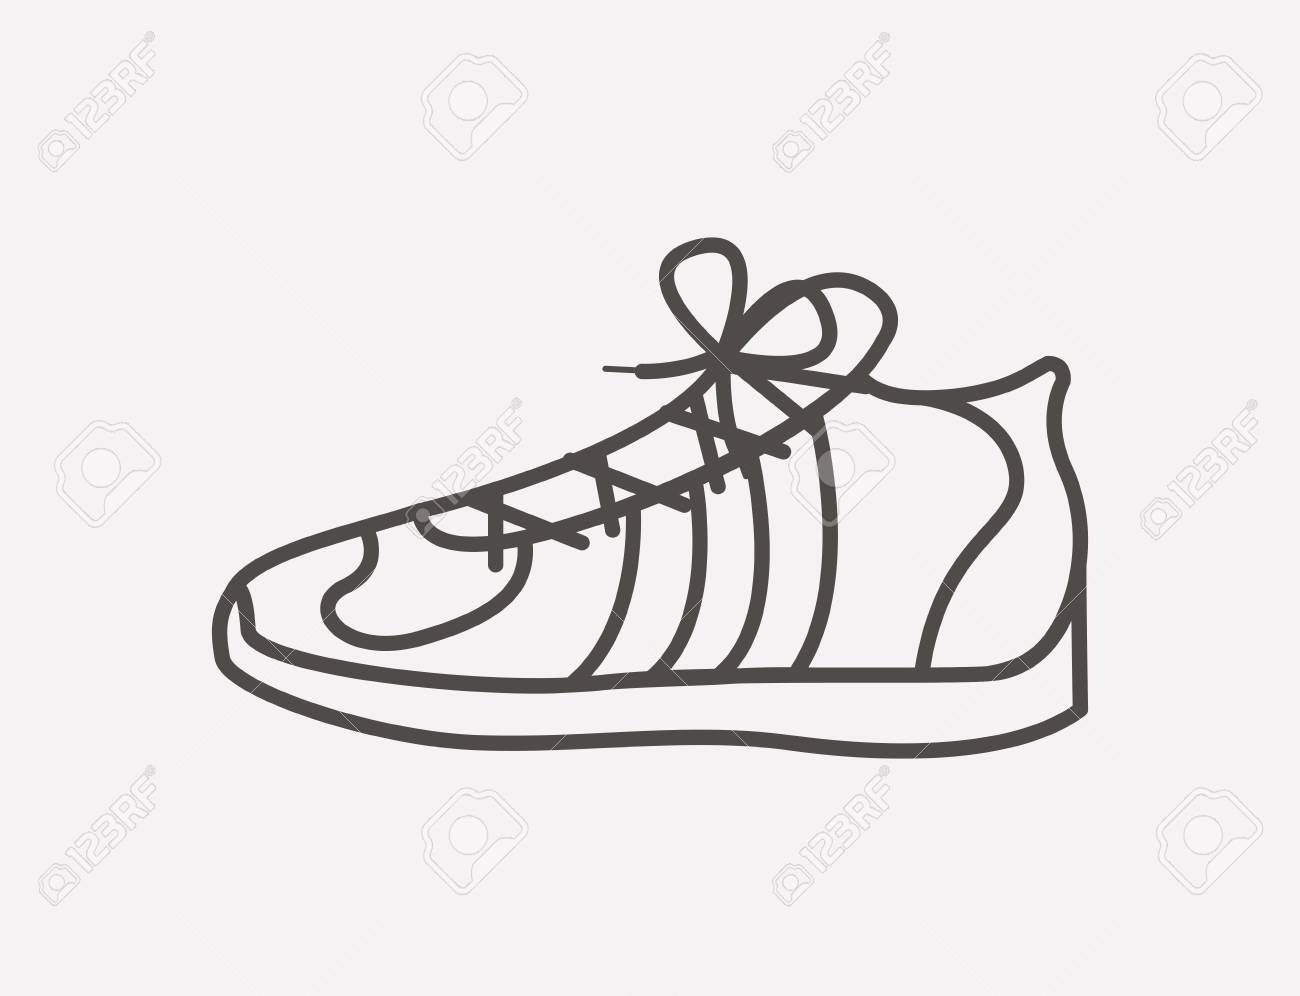 tennis shoes design, vector illustration eps10 graphic